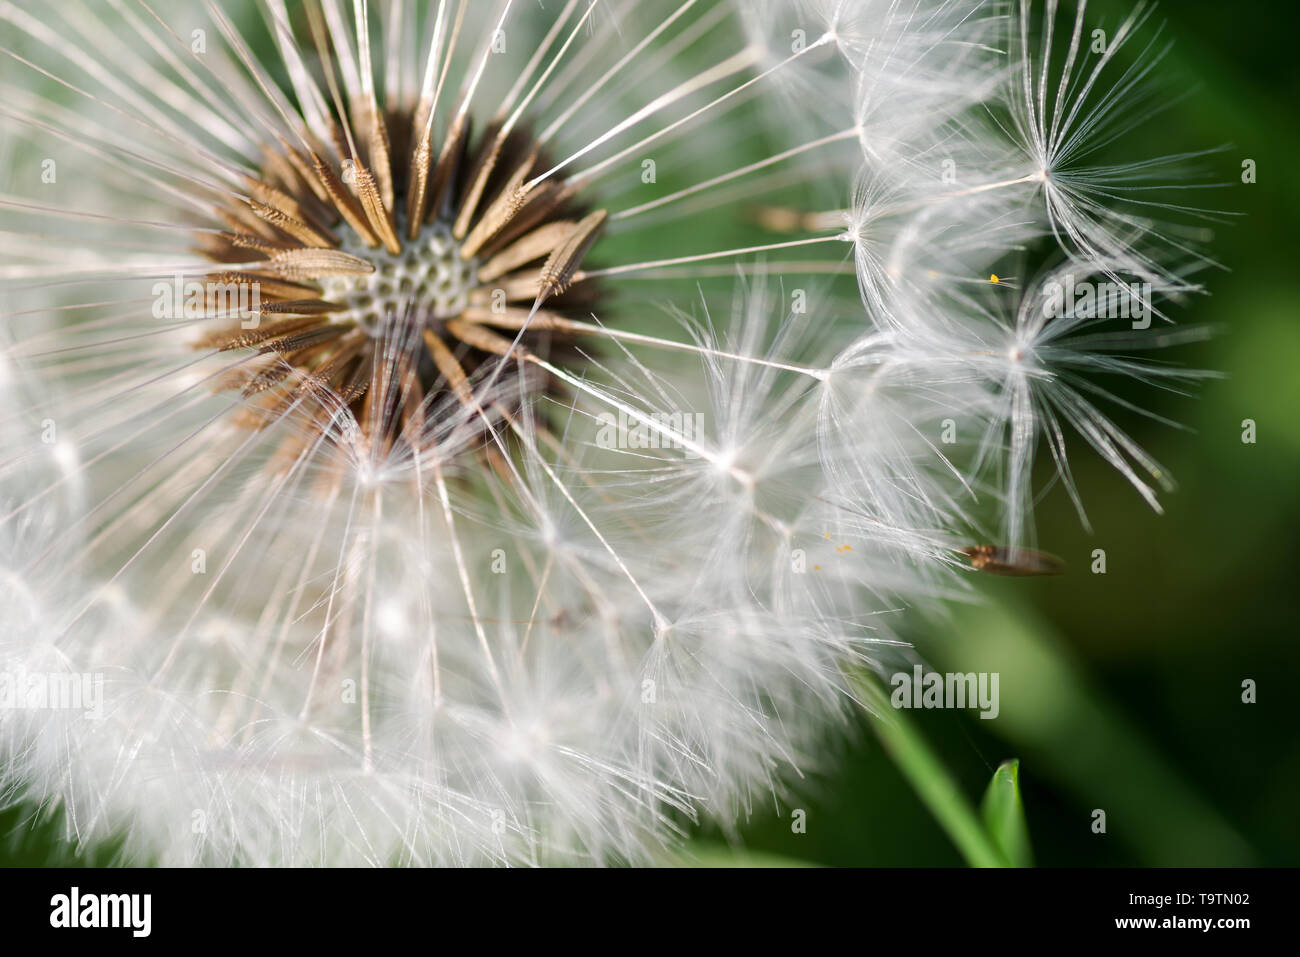 Vibrant close-up of a dandelion seed head - Stock Image